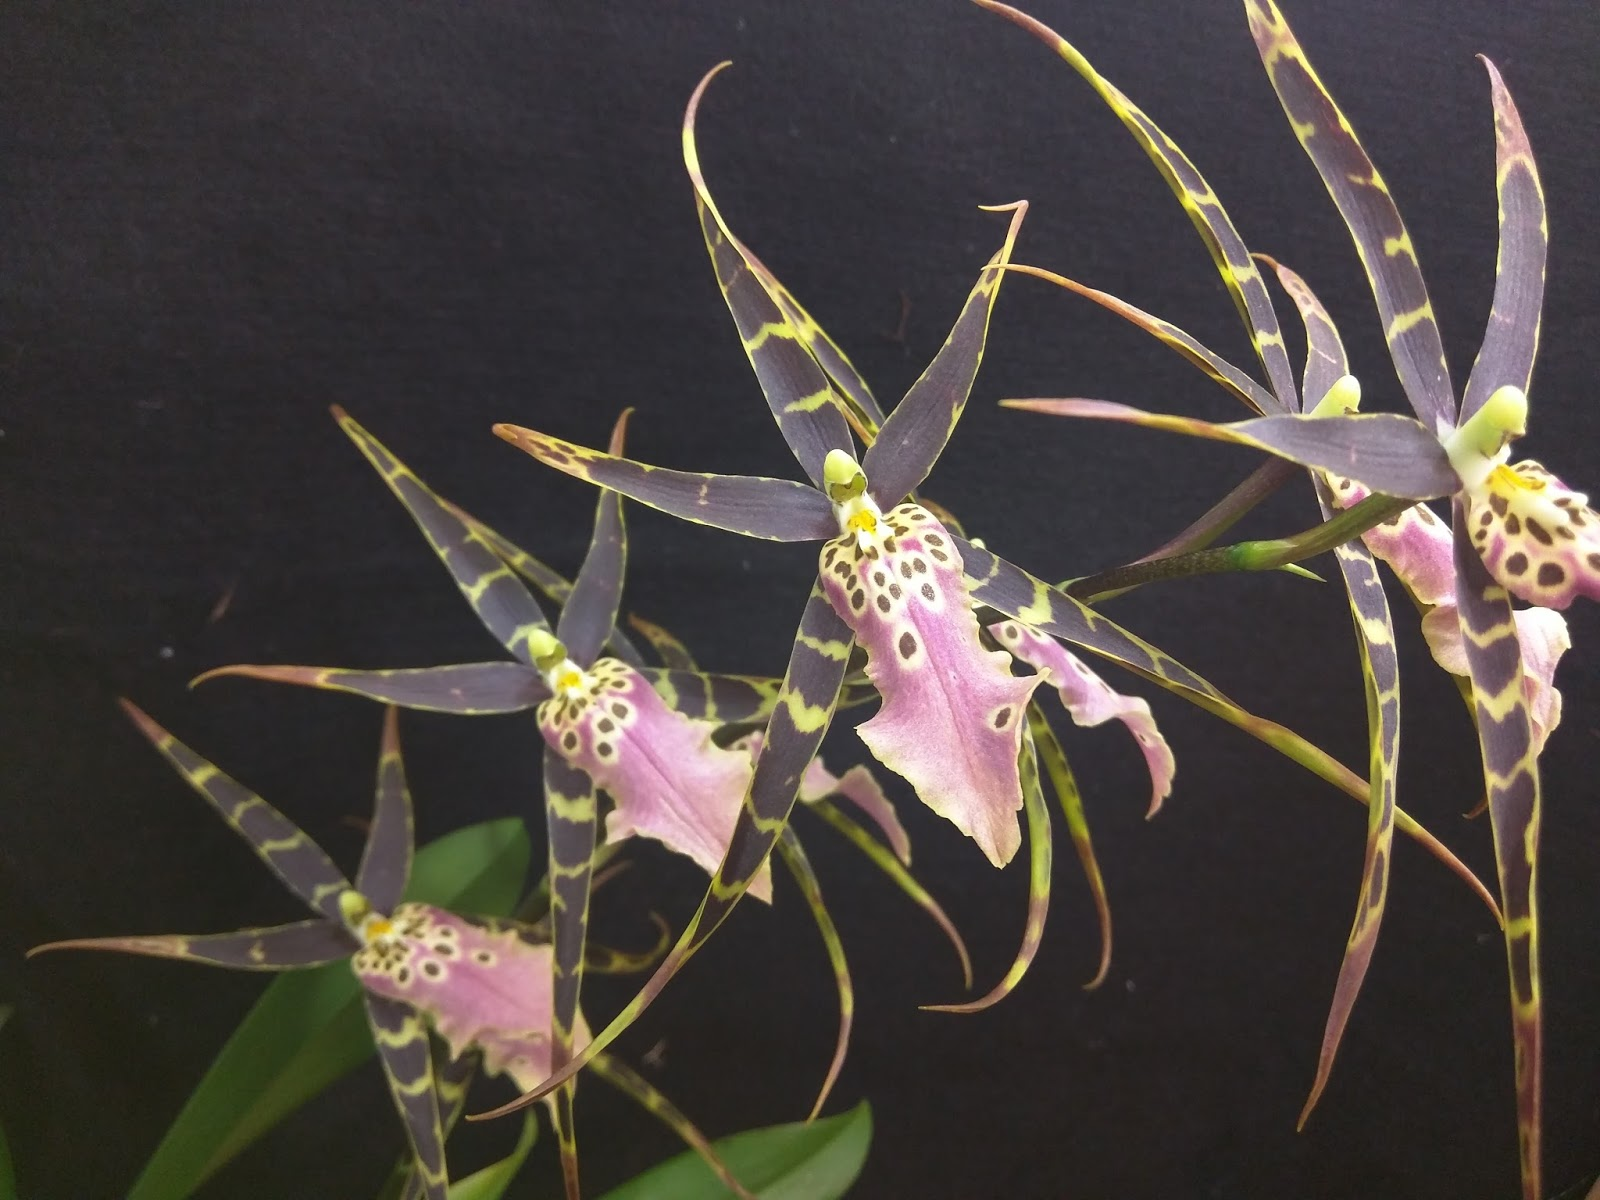 Kev S Orchids Bloom Event Bratonia Shelob Tolkien 2